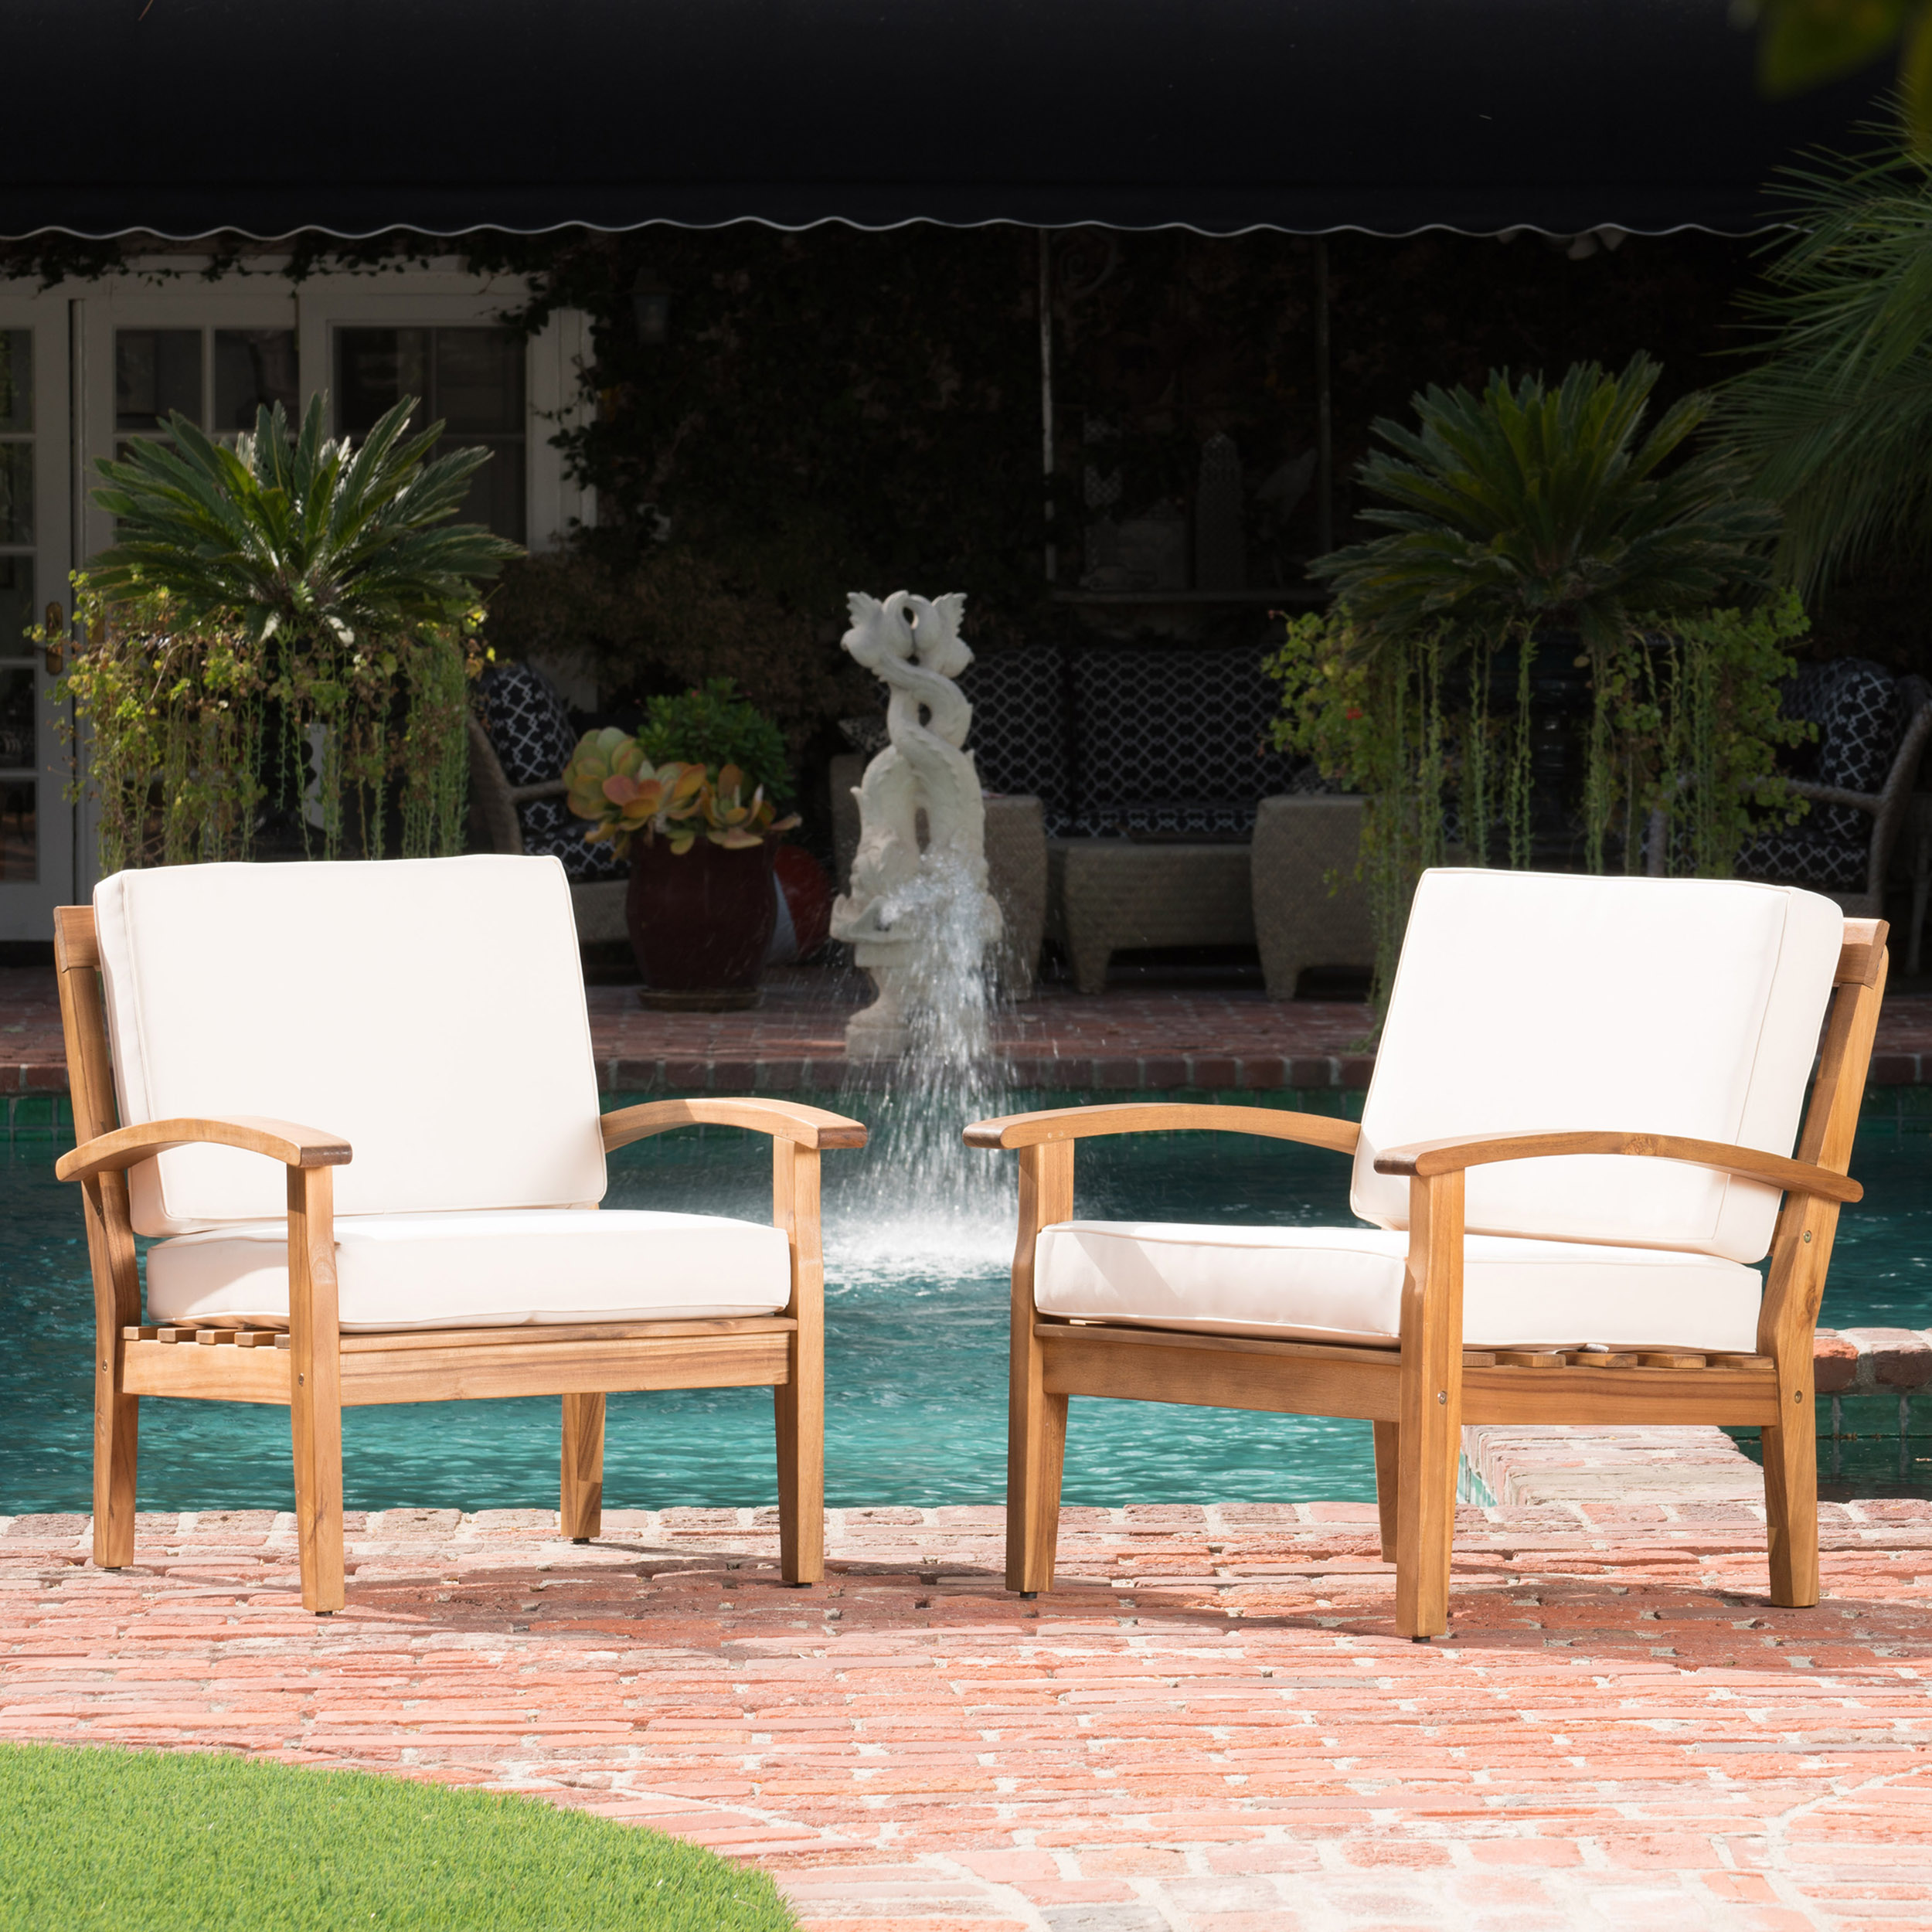 Aletta Outdoor Wooden Club Chairs with Cushions, Set of 2, Teak Finish, Beige